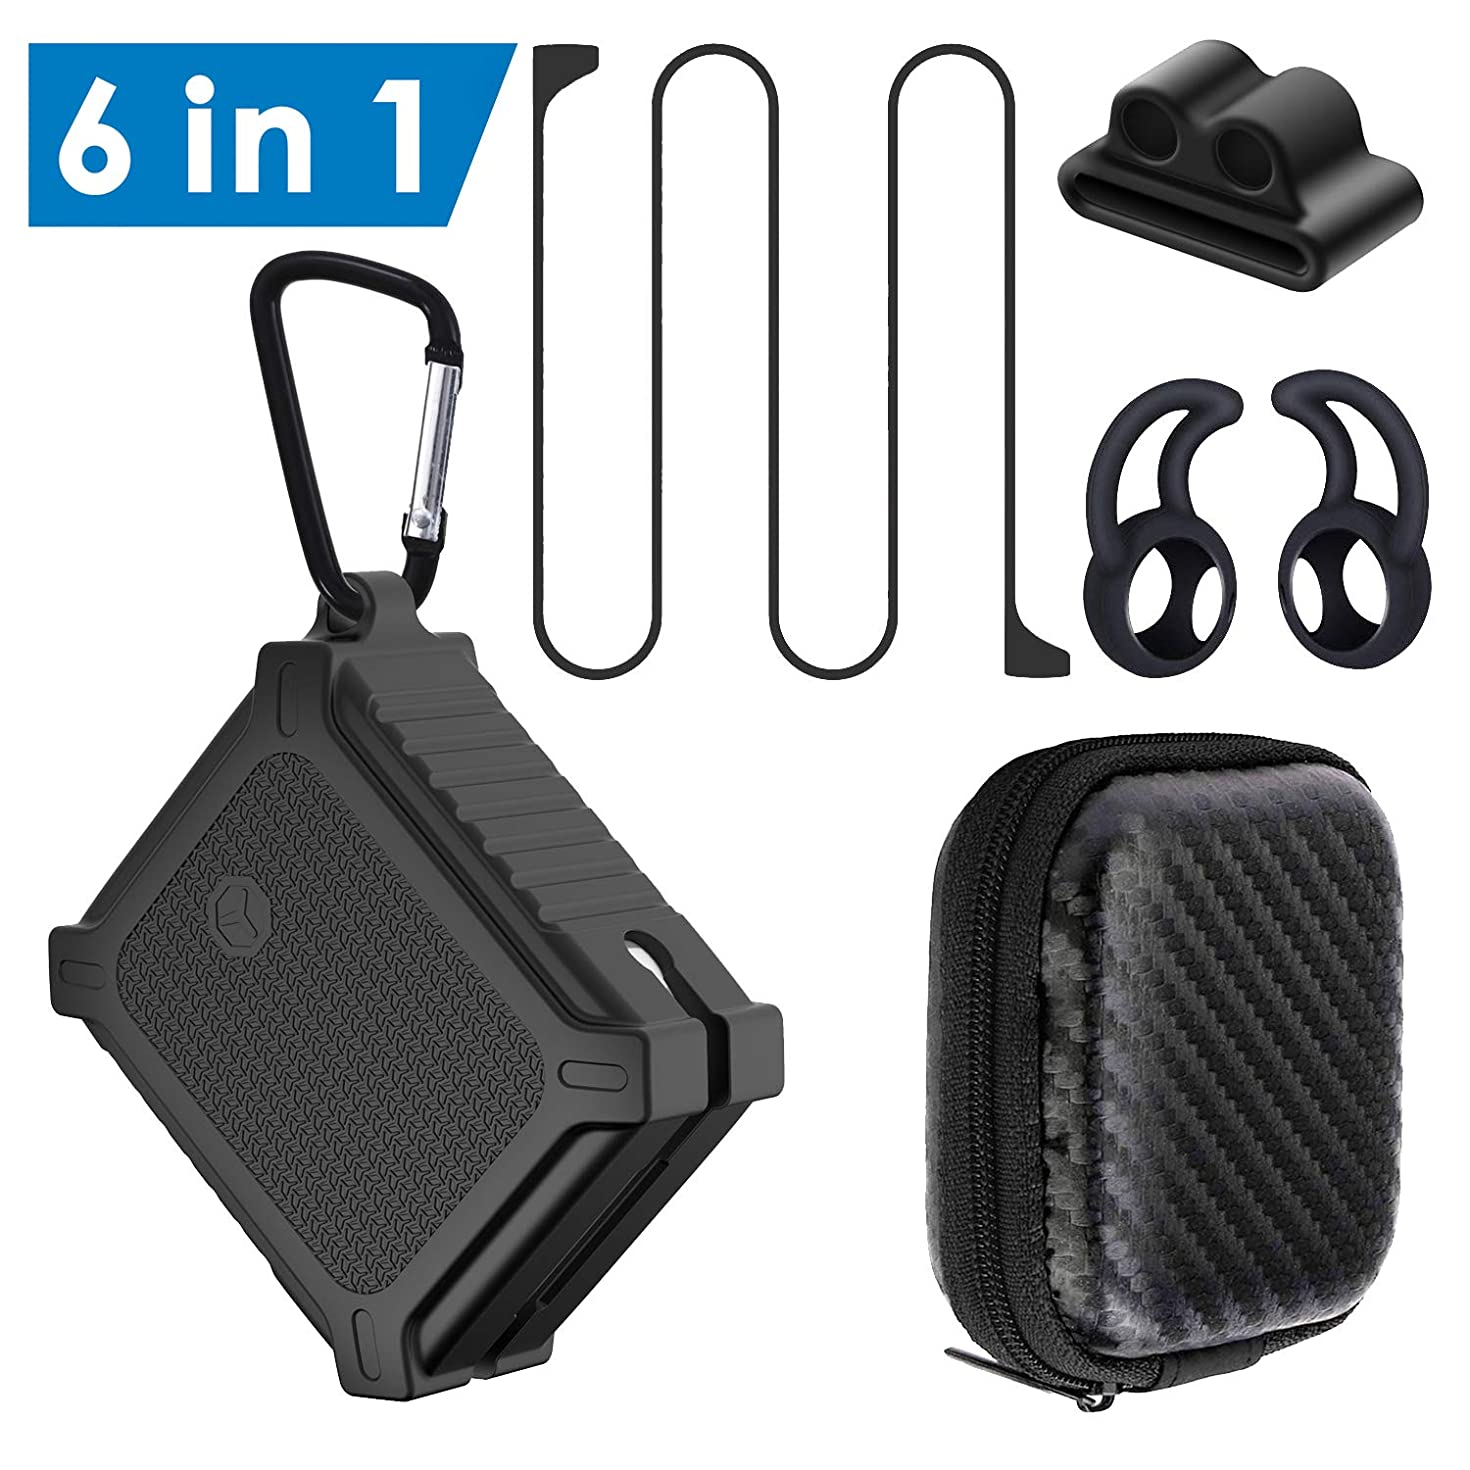 TEEMADE Airpods Accessories Kits 6 in 1,Protective Cover Case and Skin for Airpods Charging Case with Ear Hook/Steel Carabiner/Anti-Lost Strap/Watch Band Holder/Zipper Case(Black)